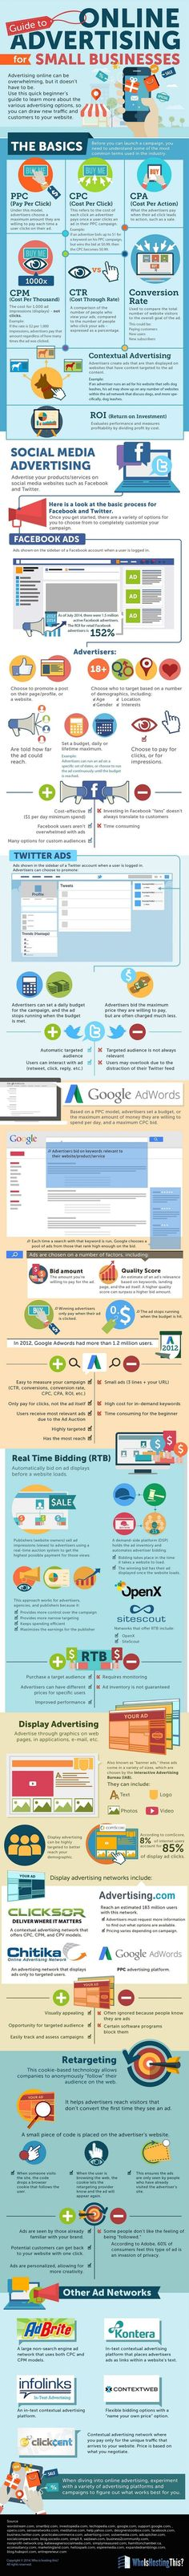 Online Advertising for Small Business according to Digital Information World #infographic